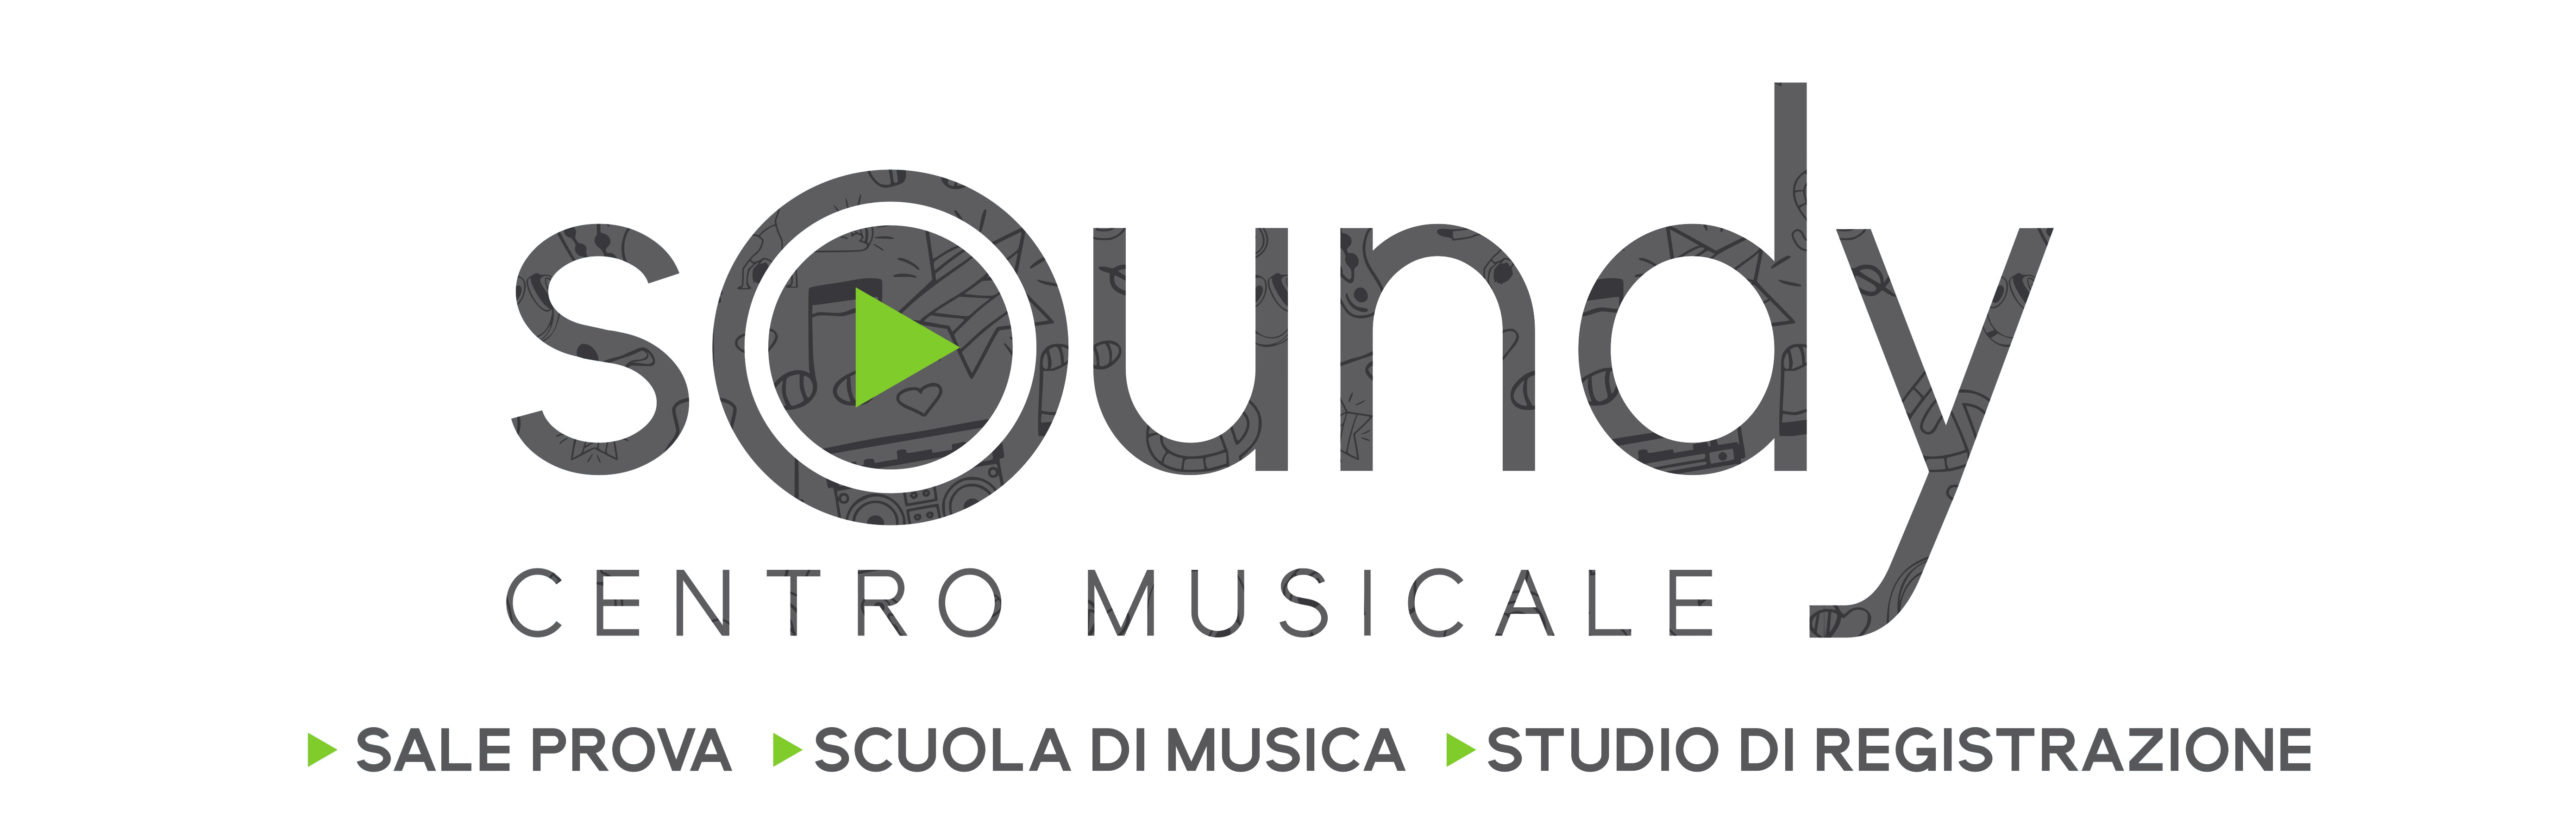 Centro Musicale Soundy